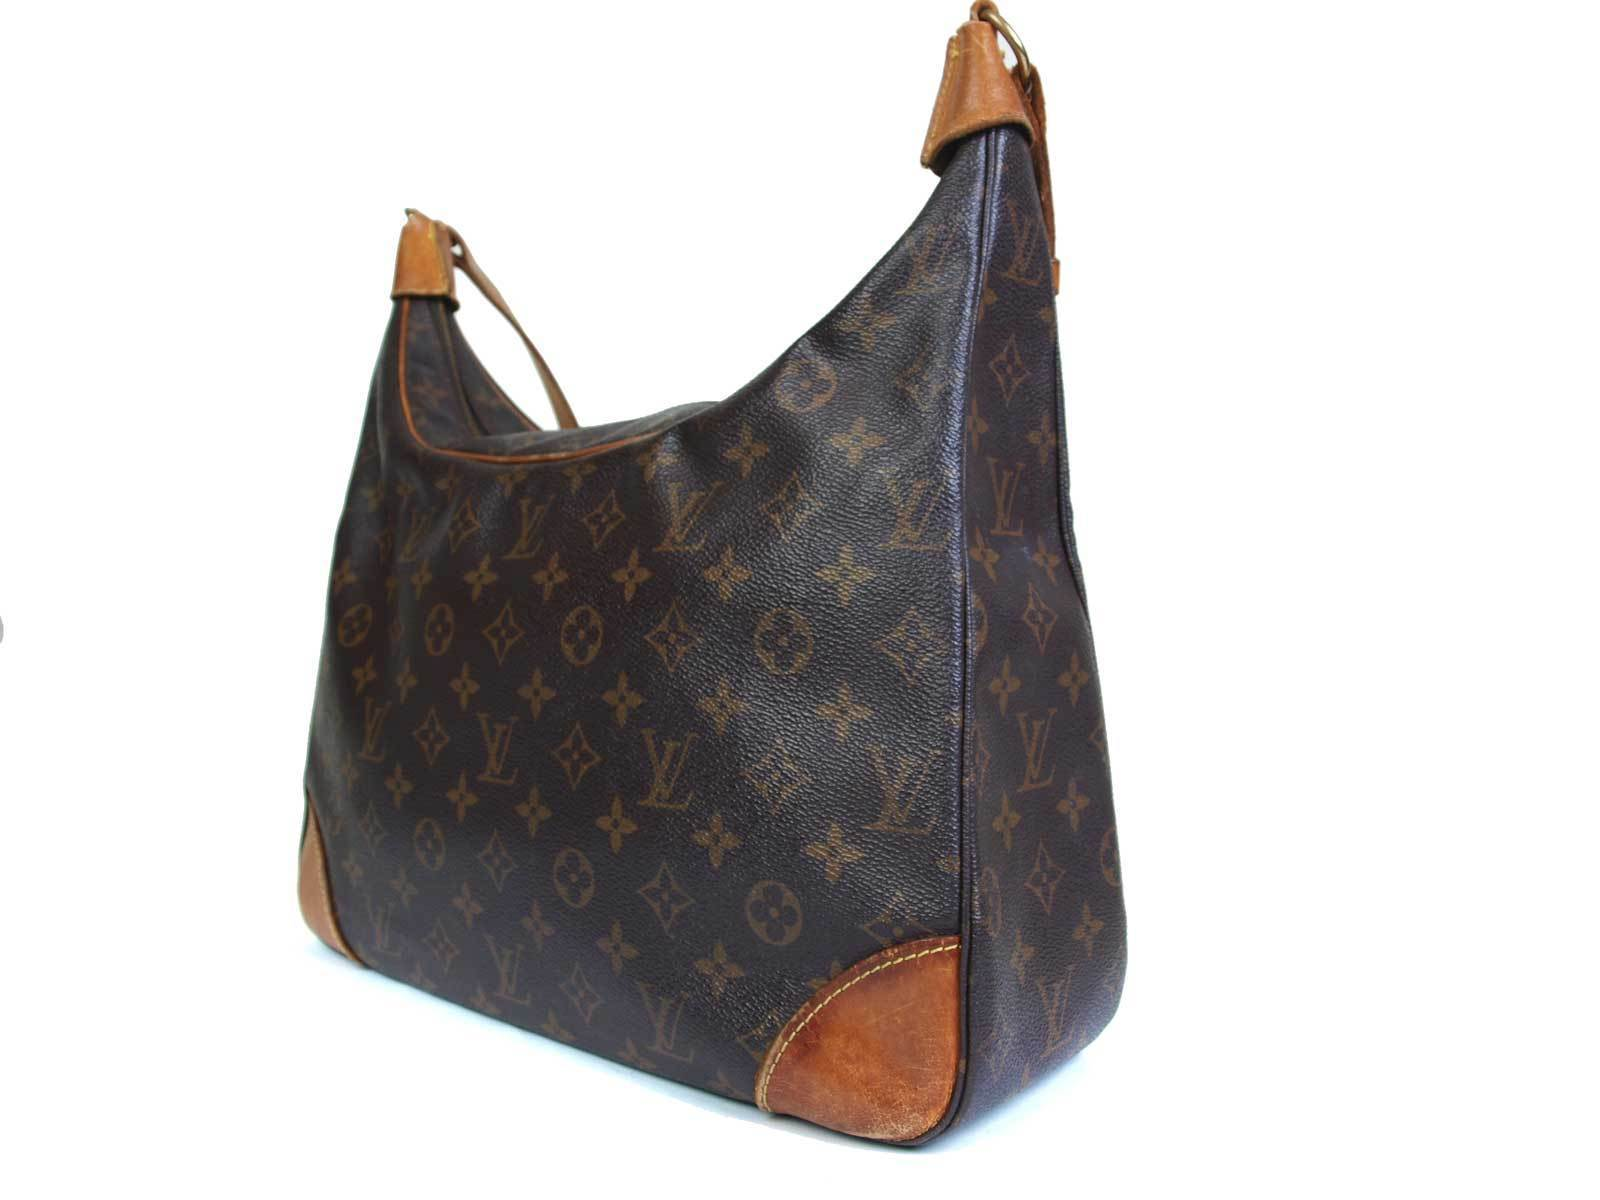 Auth LOUIS VUITTON Boulogne 35 Monogram Shoulder Bag LP16238L